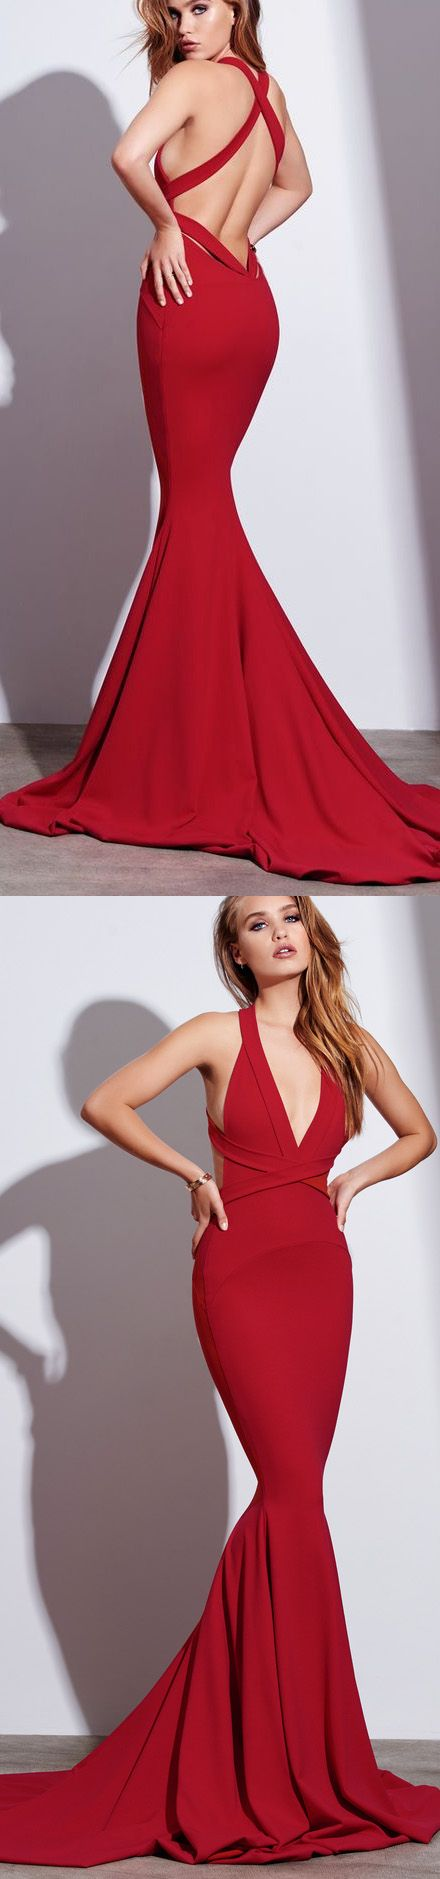 Red Prom Dresses, Long Prom Dresses, Long Red Prom Dresses, Prom Dresses Long, Prom Dresses Red, Chiffon Prom Dresses, Long Evening Dresses, Long Red dresses, Red Long dresses, Criss-Cross Evening Dresses, Criss Cross Prom Dresses, Chiffon Evening Dresses, Sweep Train Prom Dresses